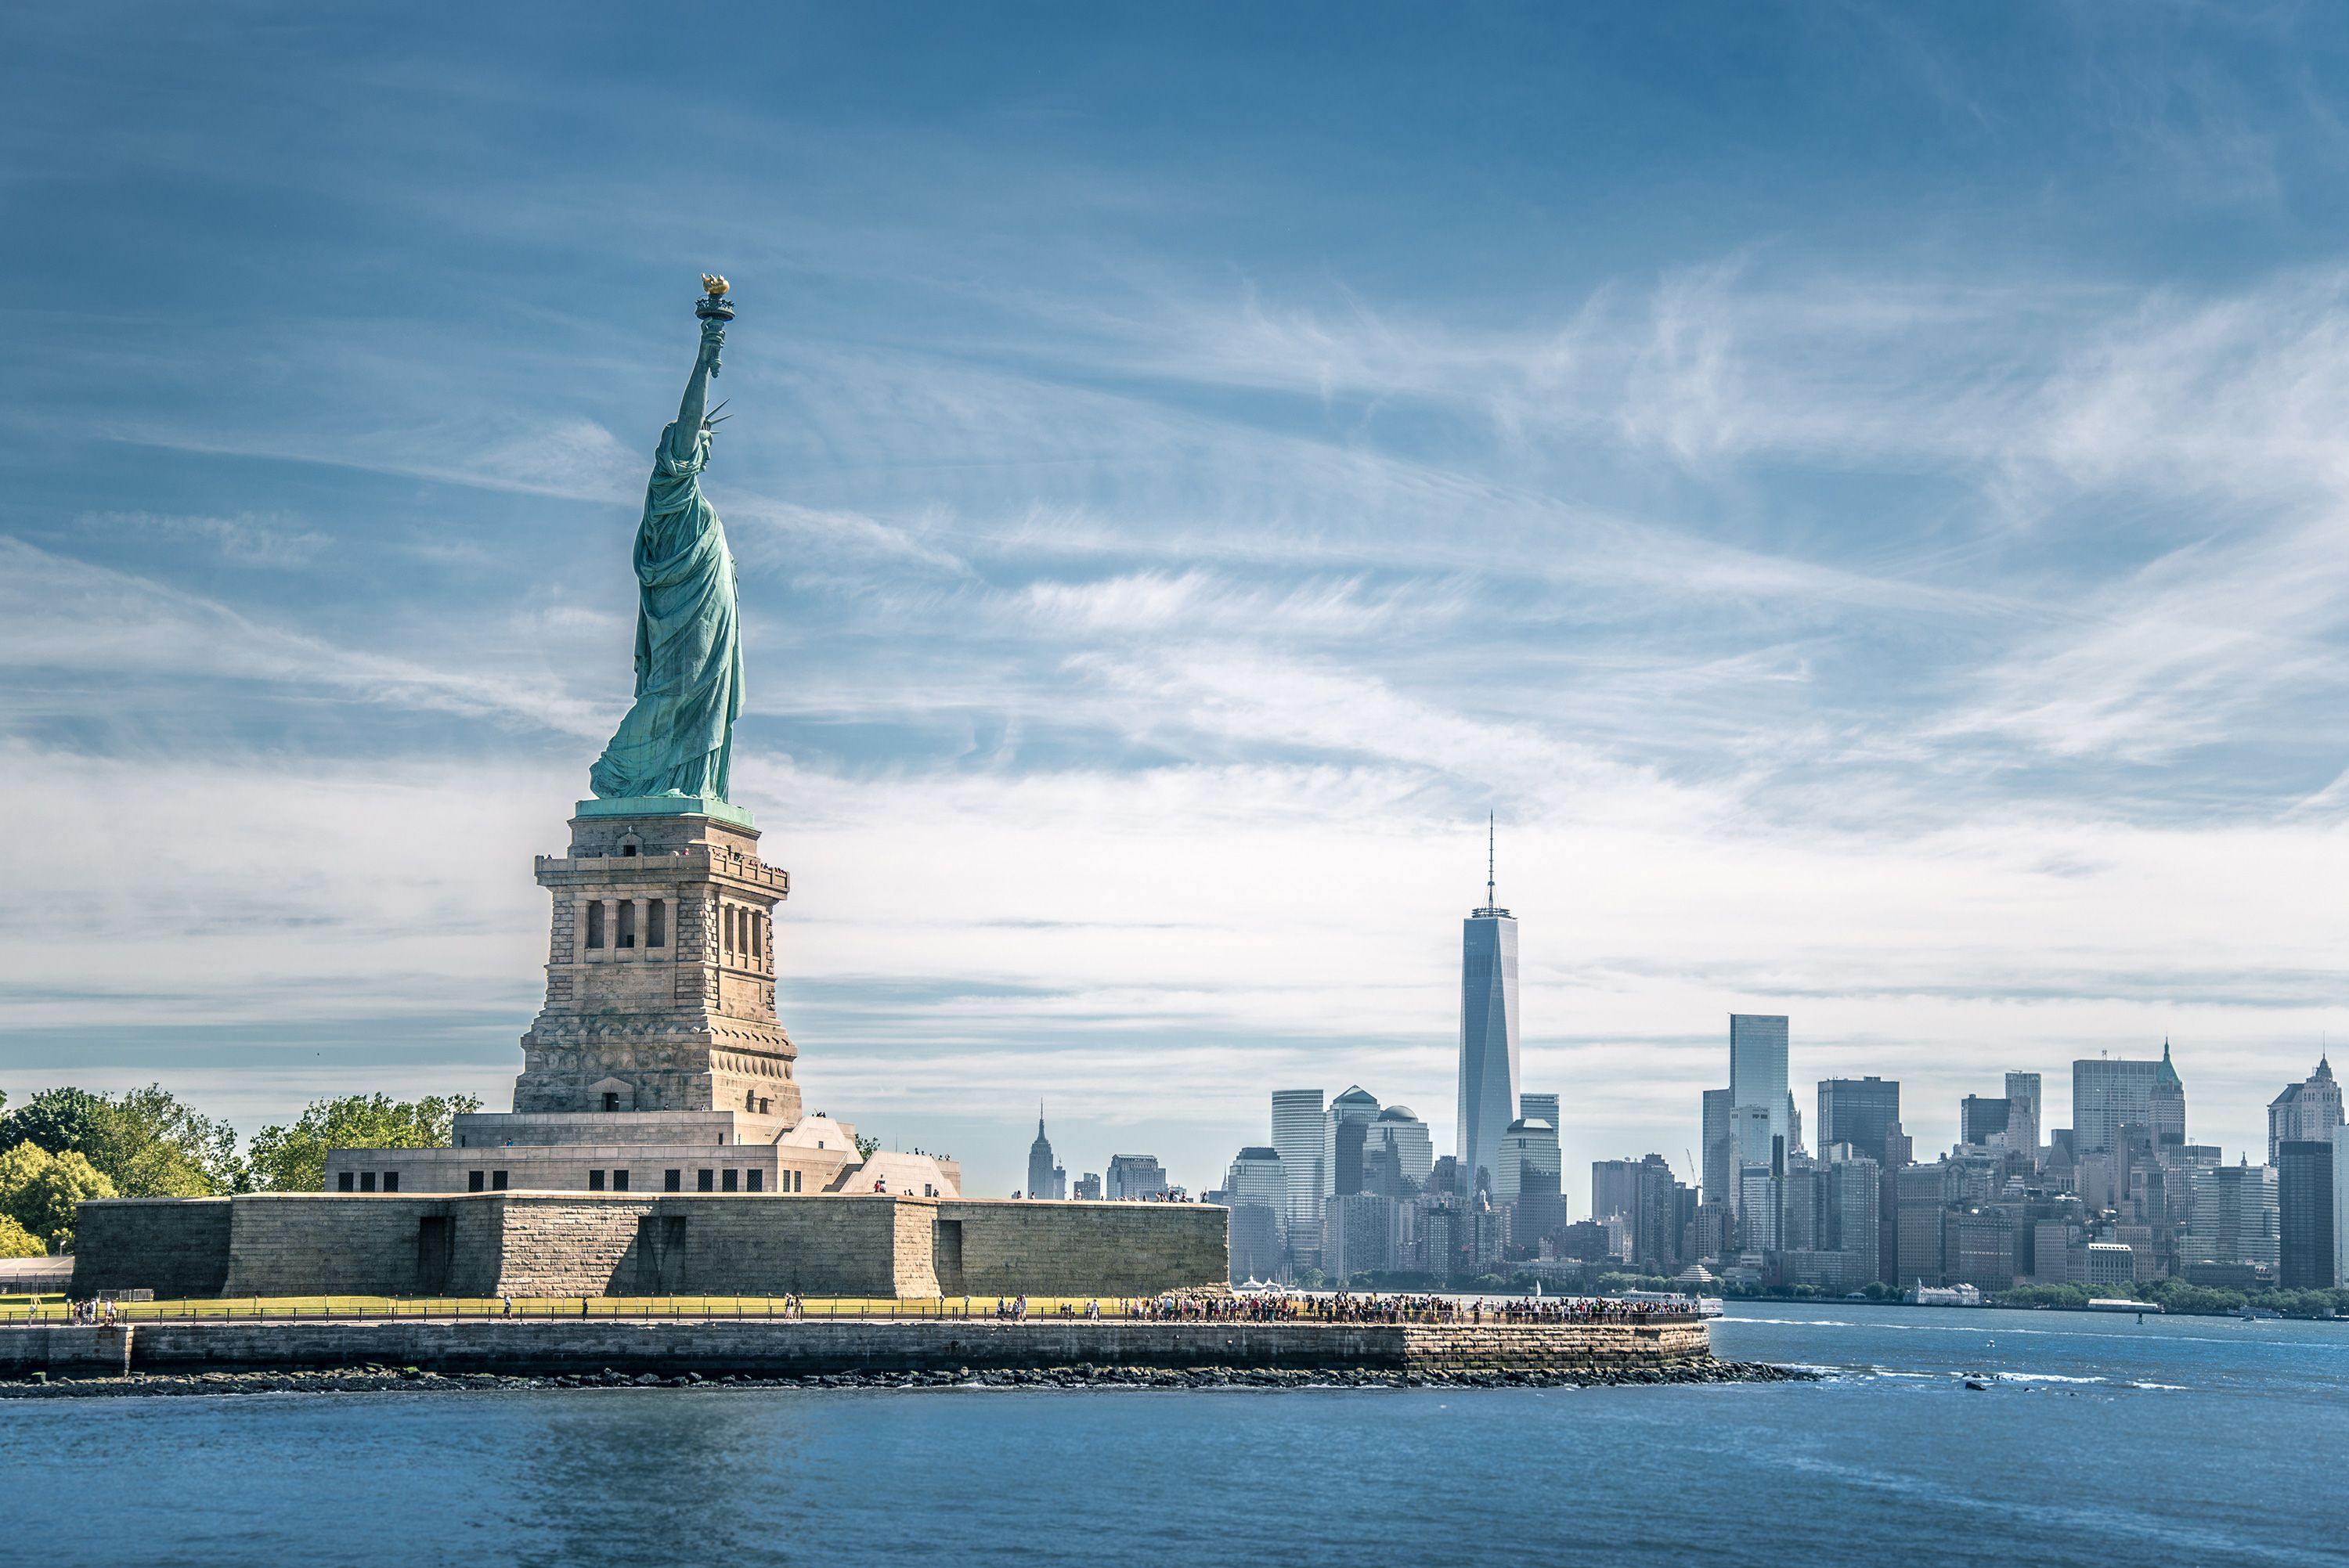 Statue of Liberty front view United States